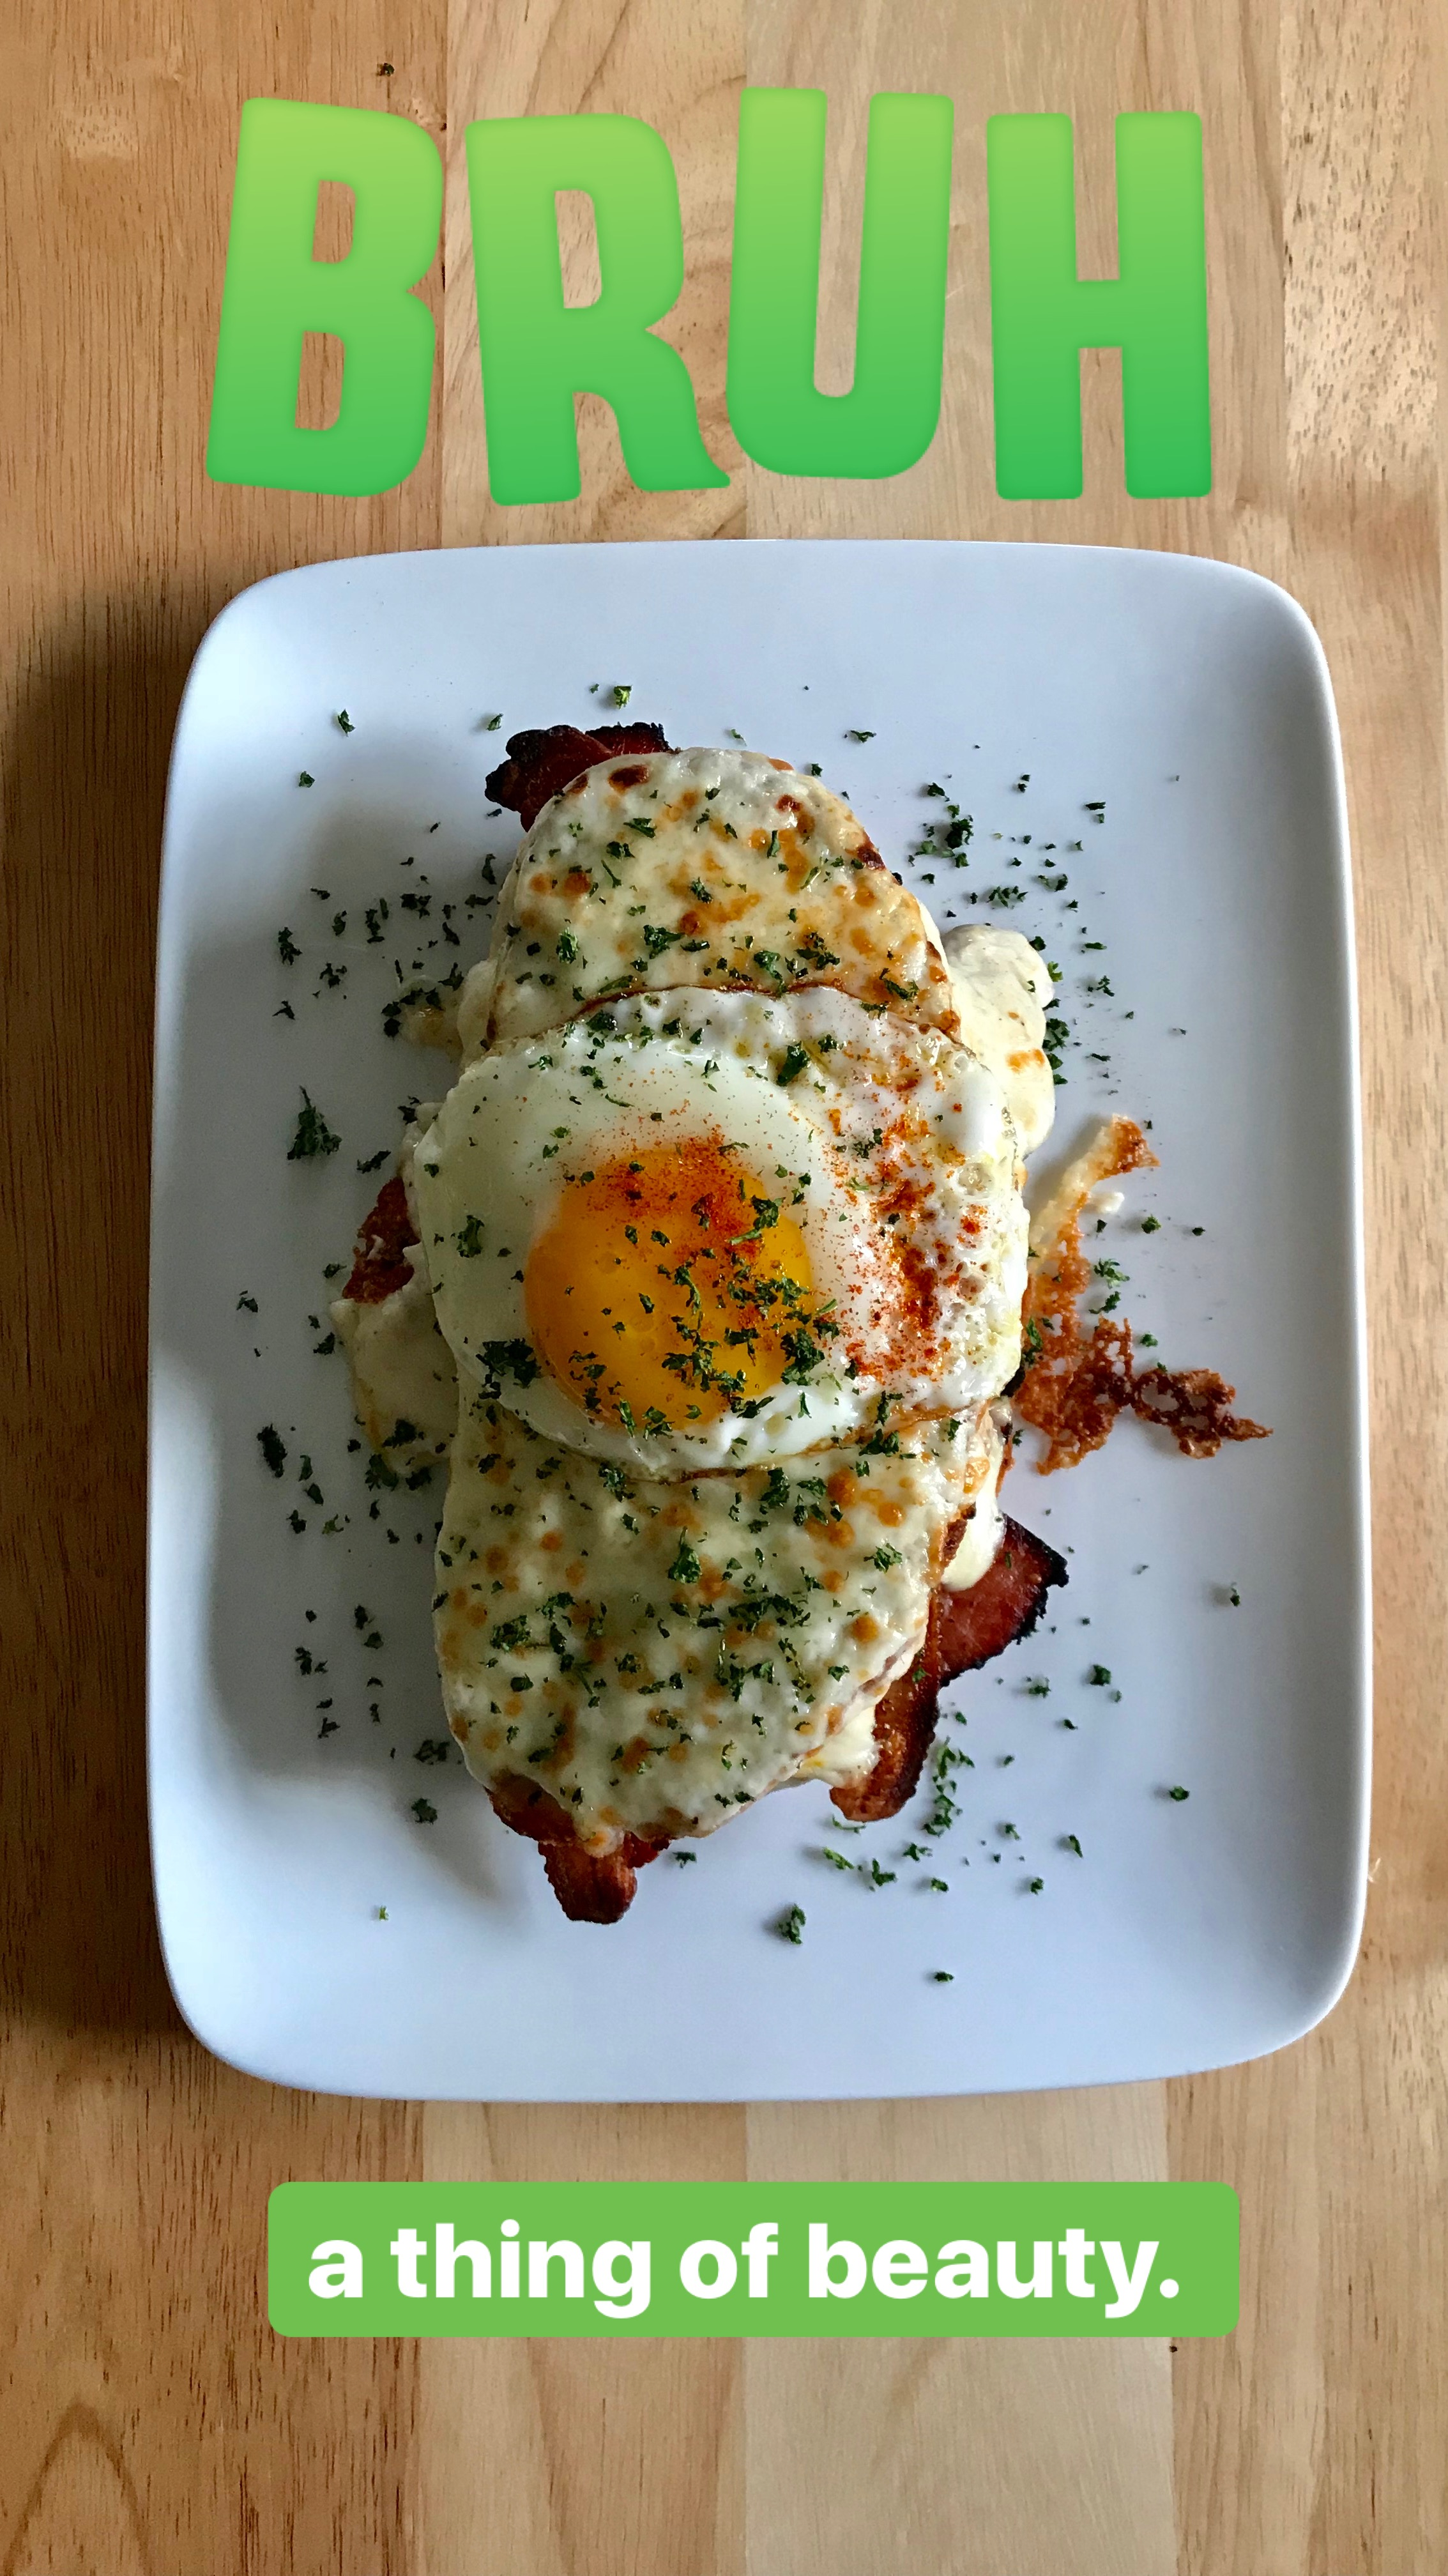 Croque Madame - As seen on Instagram's Brunch with Brundle.